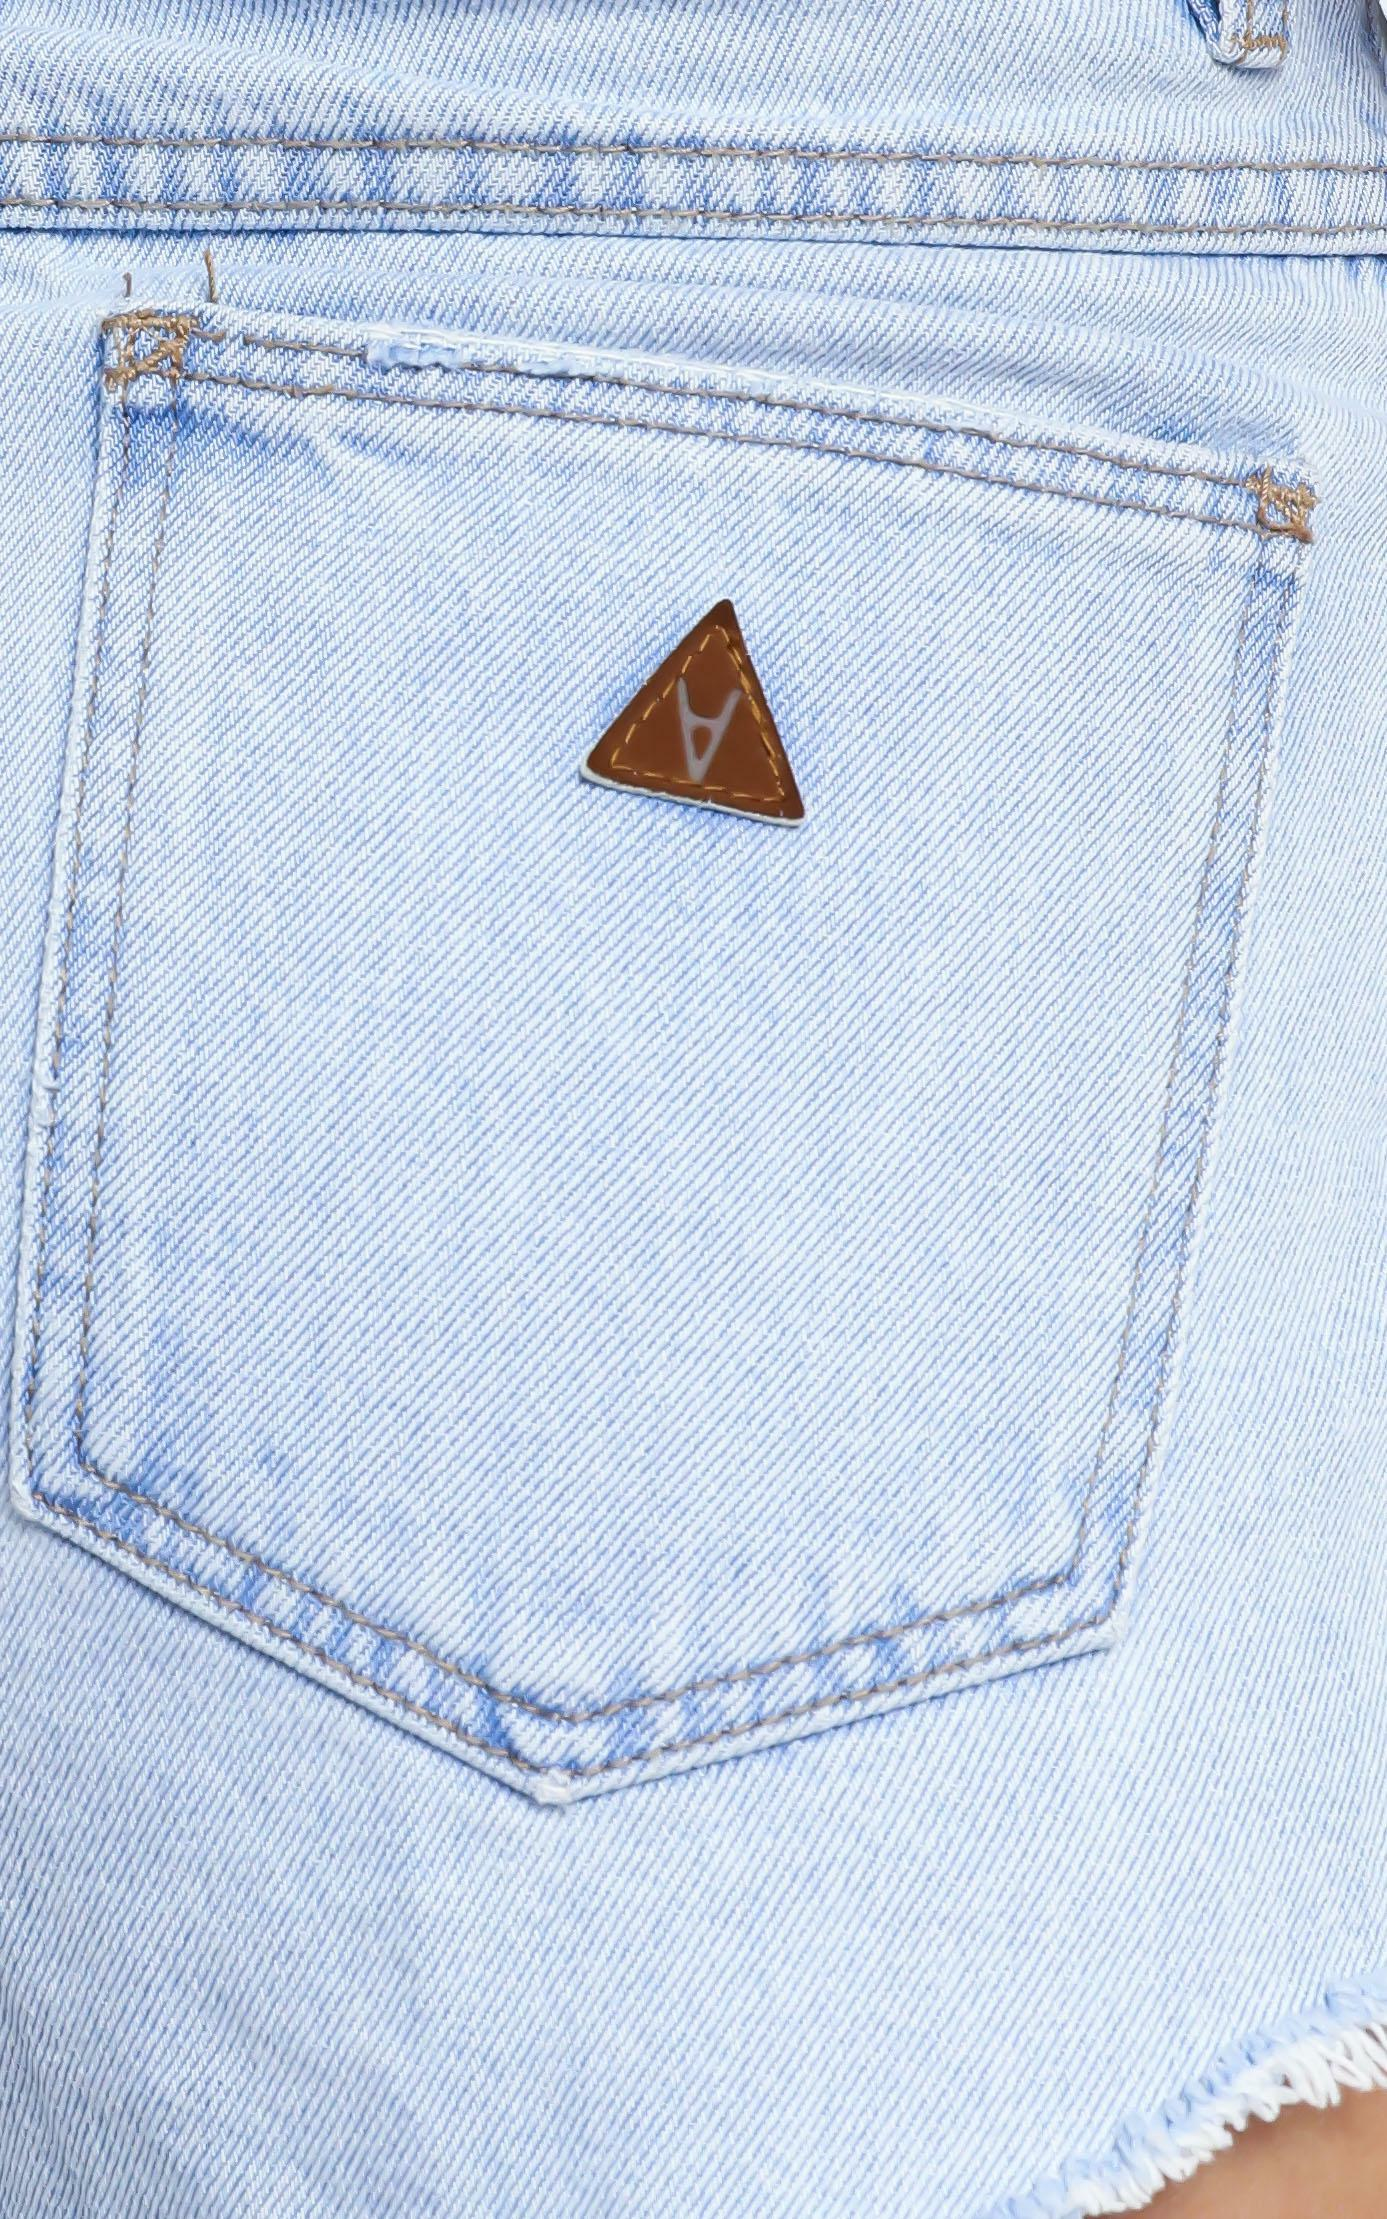 Abrand - A High Relaxed Denim Short in Smooth - 6 (XS), Blue, hi-res image number null